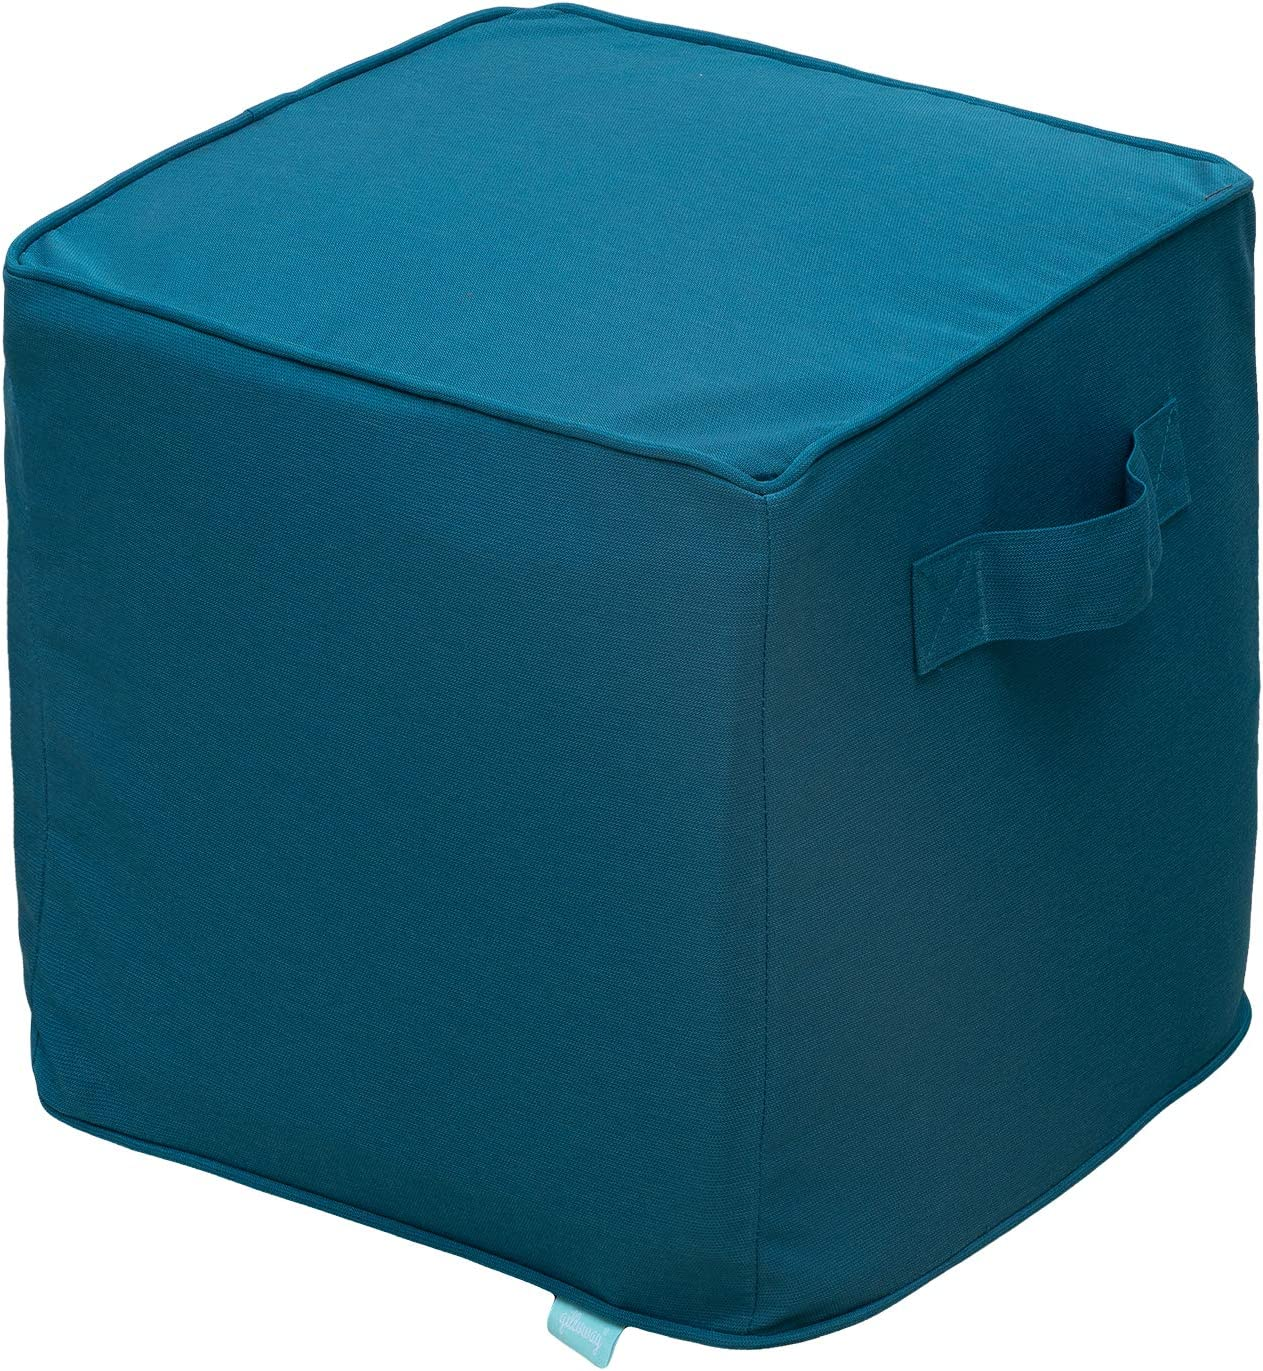 QILLOWAY quality assurance Indoor Outdoor Inflatable Stool Mail order cheap 16